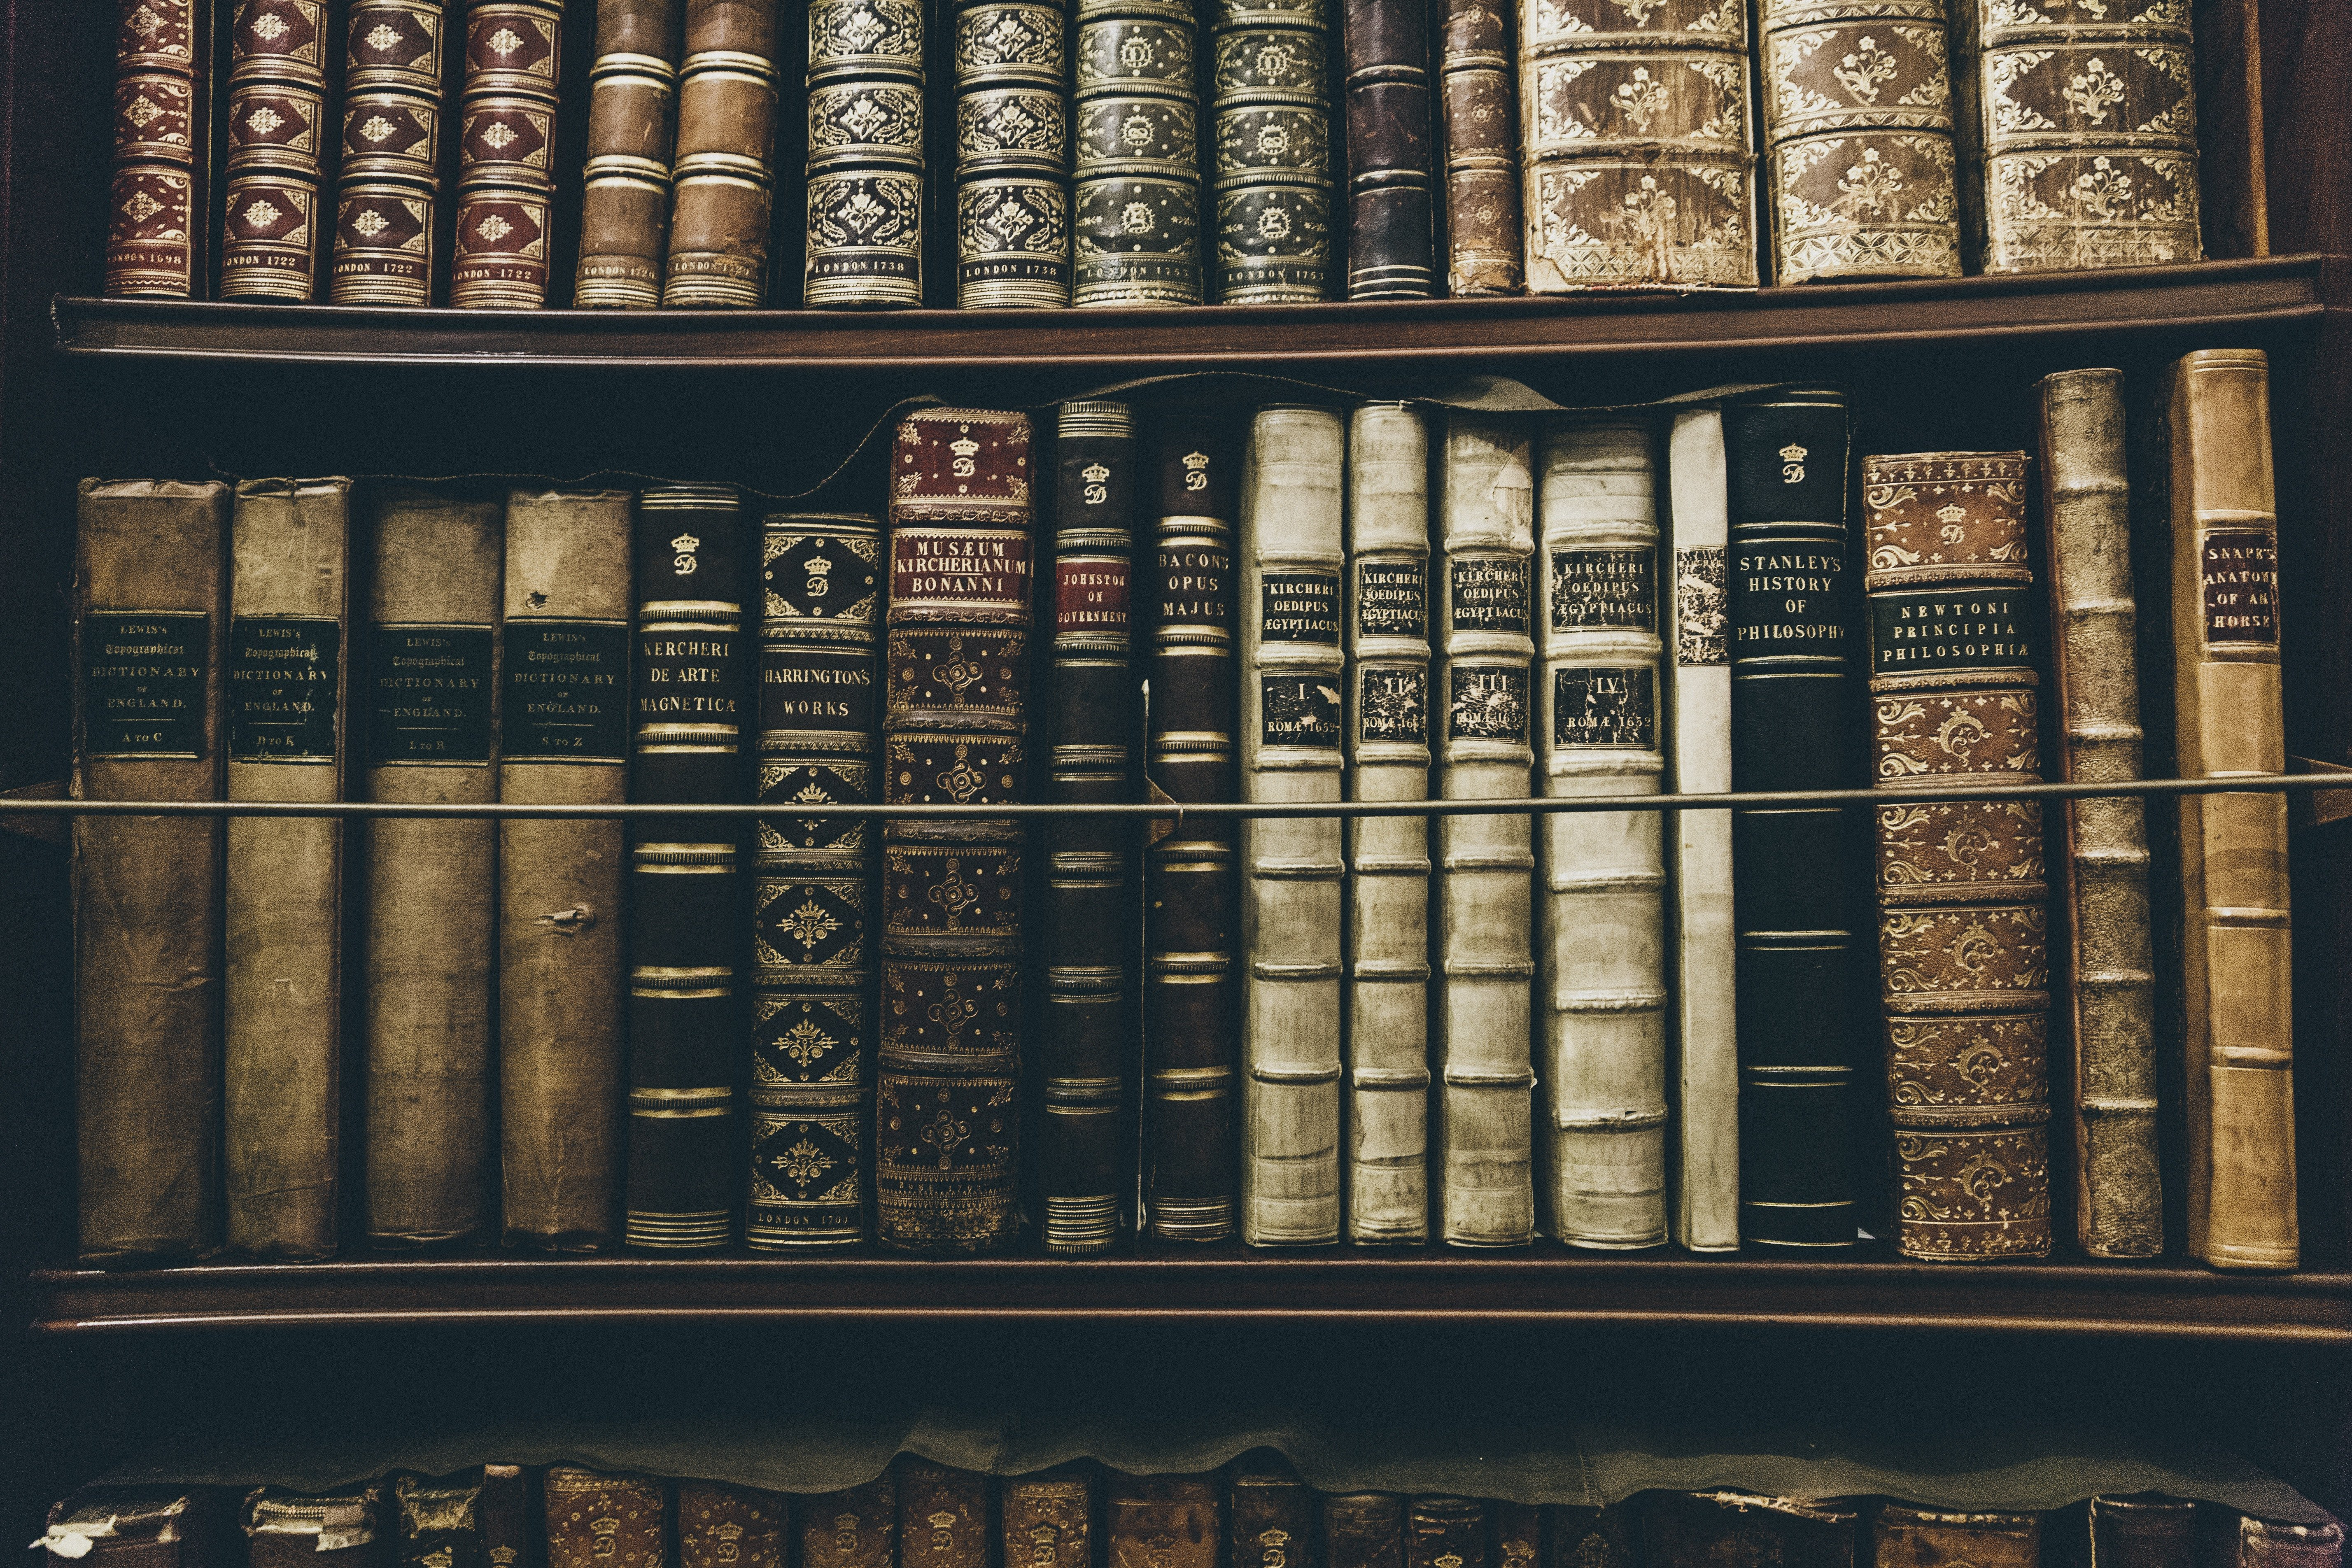 The history of contract law offers fascinating insights.